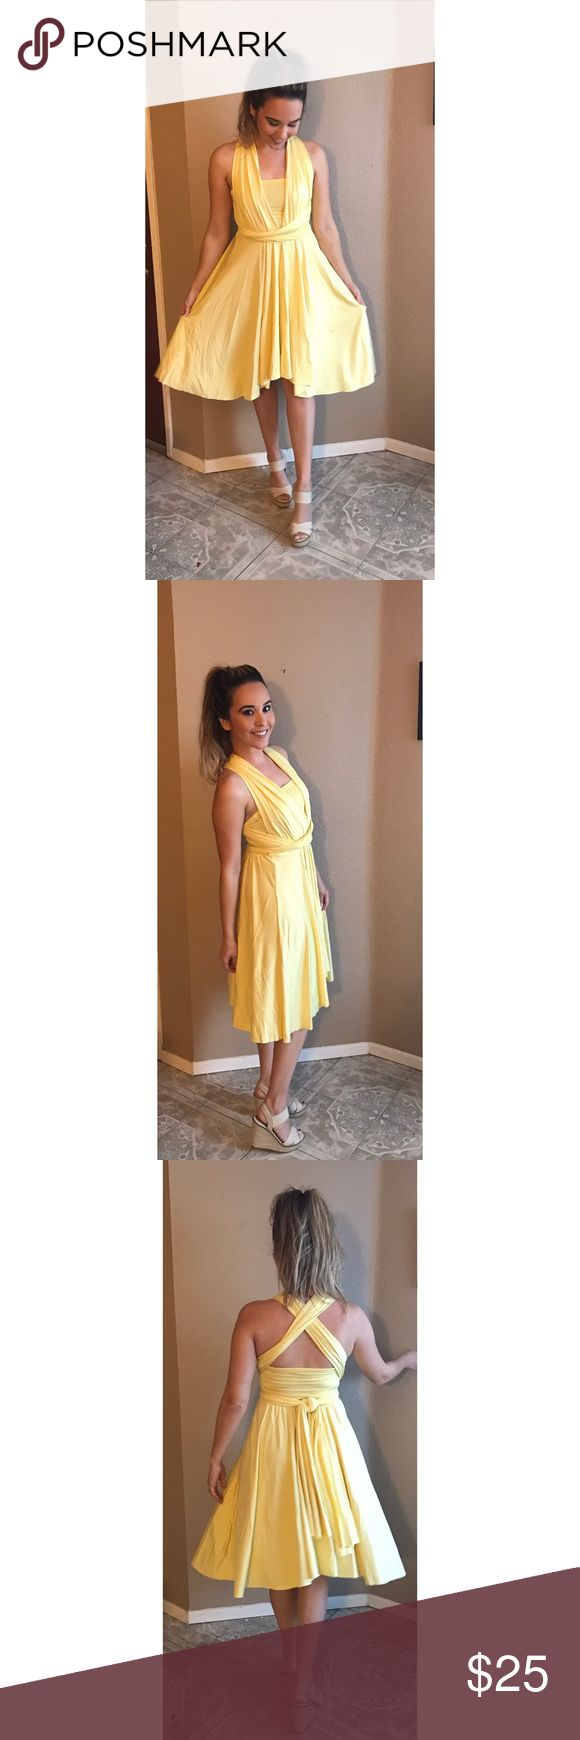 """Light Yellow Infinity Dress Light Yellow Infinity Dress with bandeau, can be styled MANY different ways! YouTube tutorials on how it can be styled. Dress worn one time. Great condition. Dress was sold in """"one size"""", fits like a S/M. Dresses Midi"""